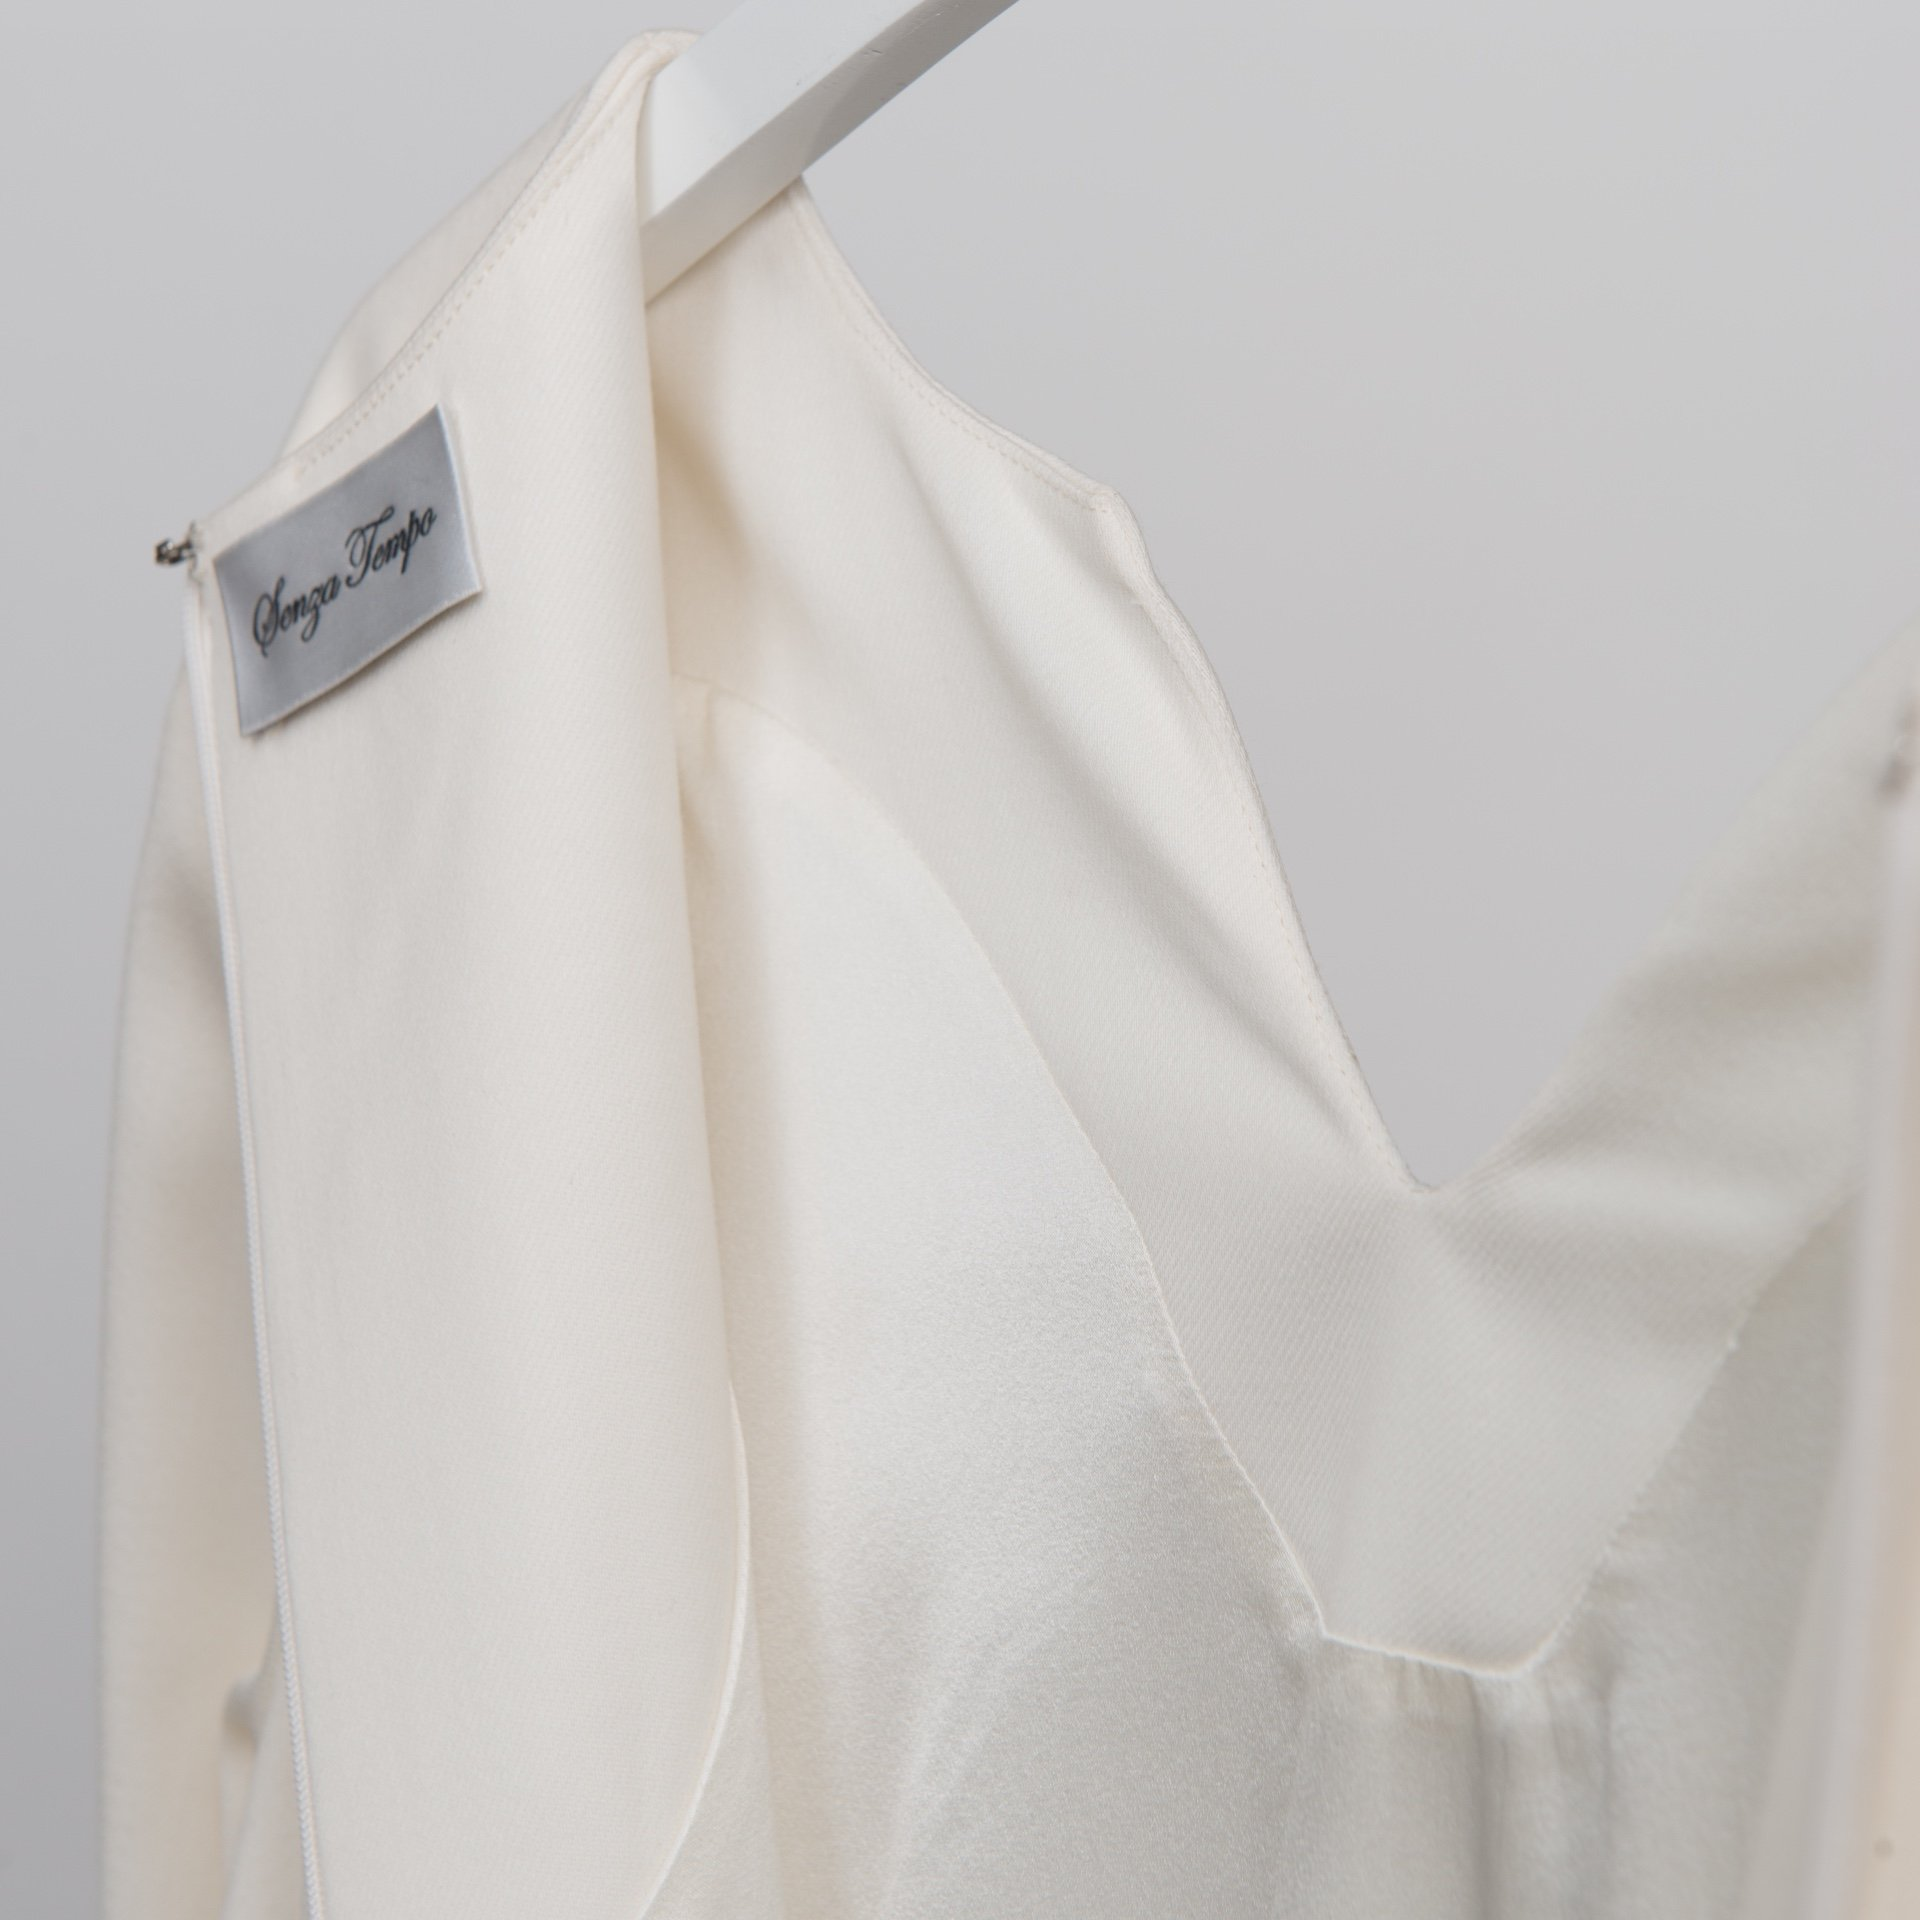 The Benefits of Using Silk in Clothing